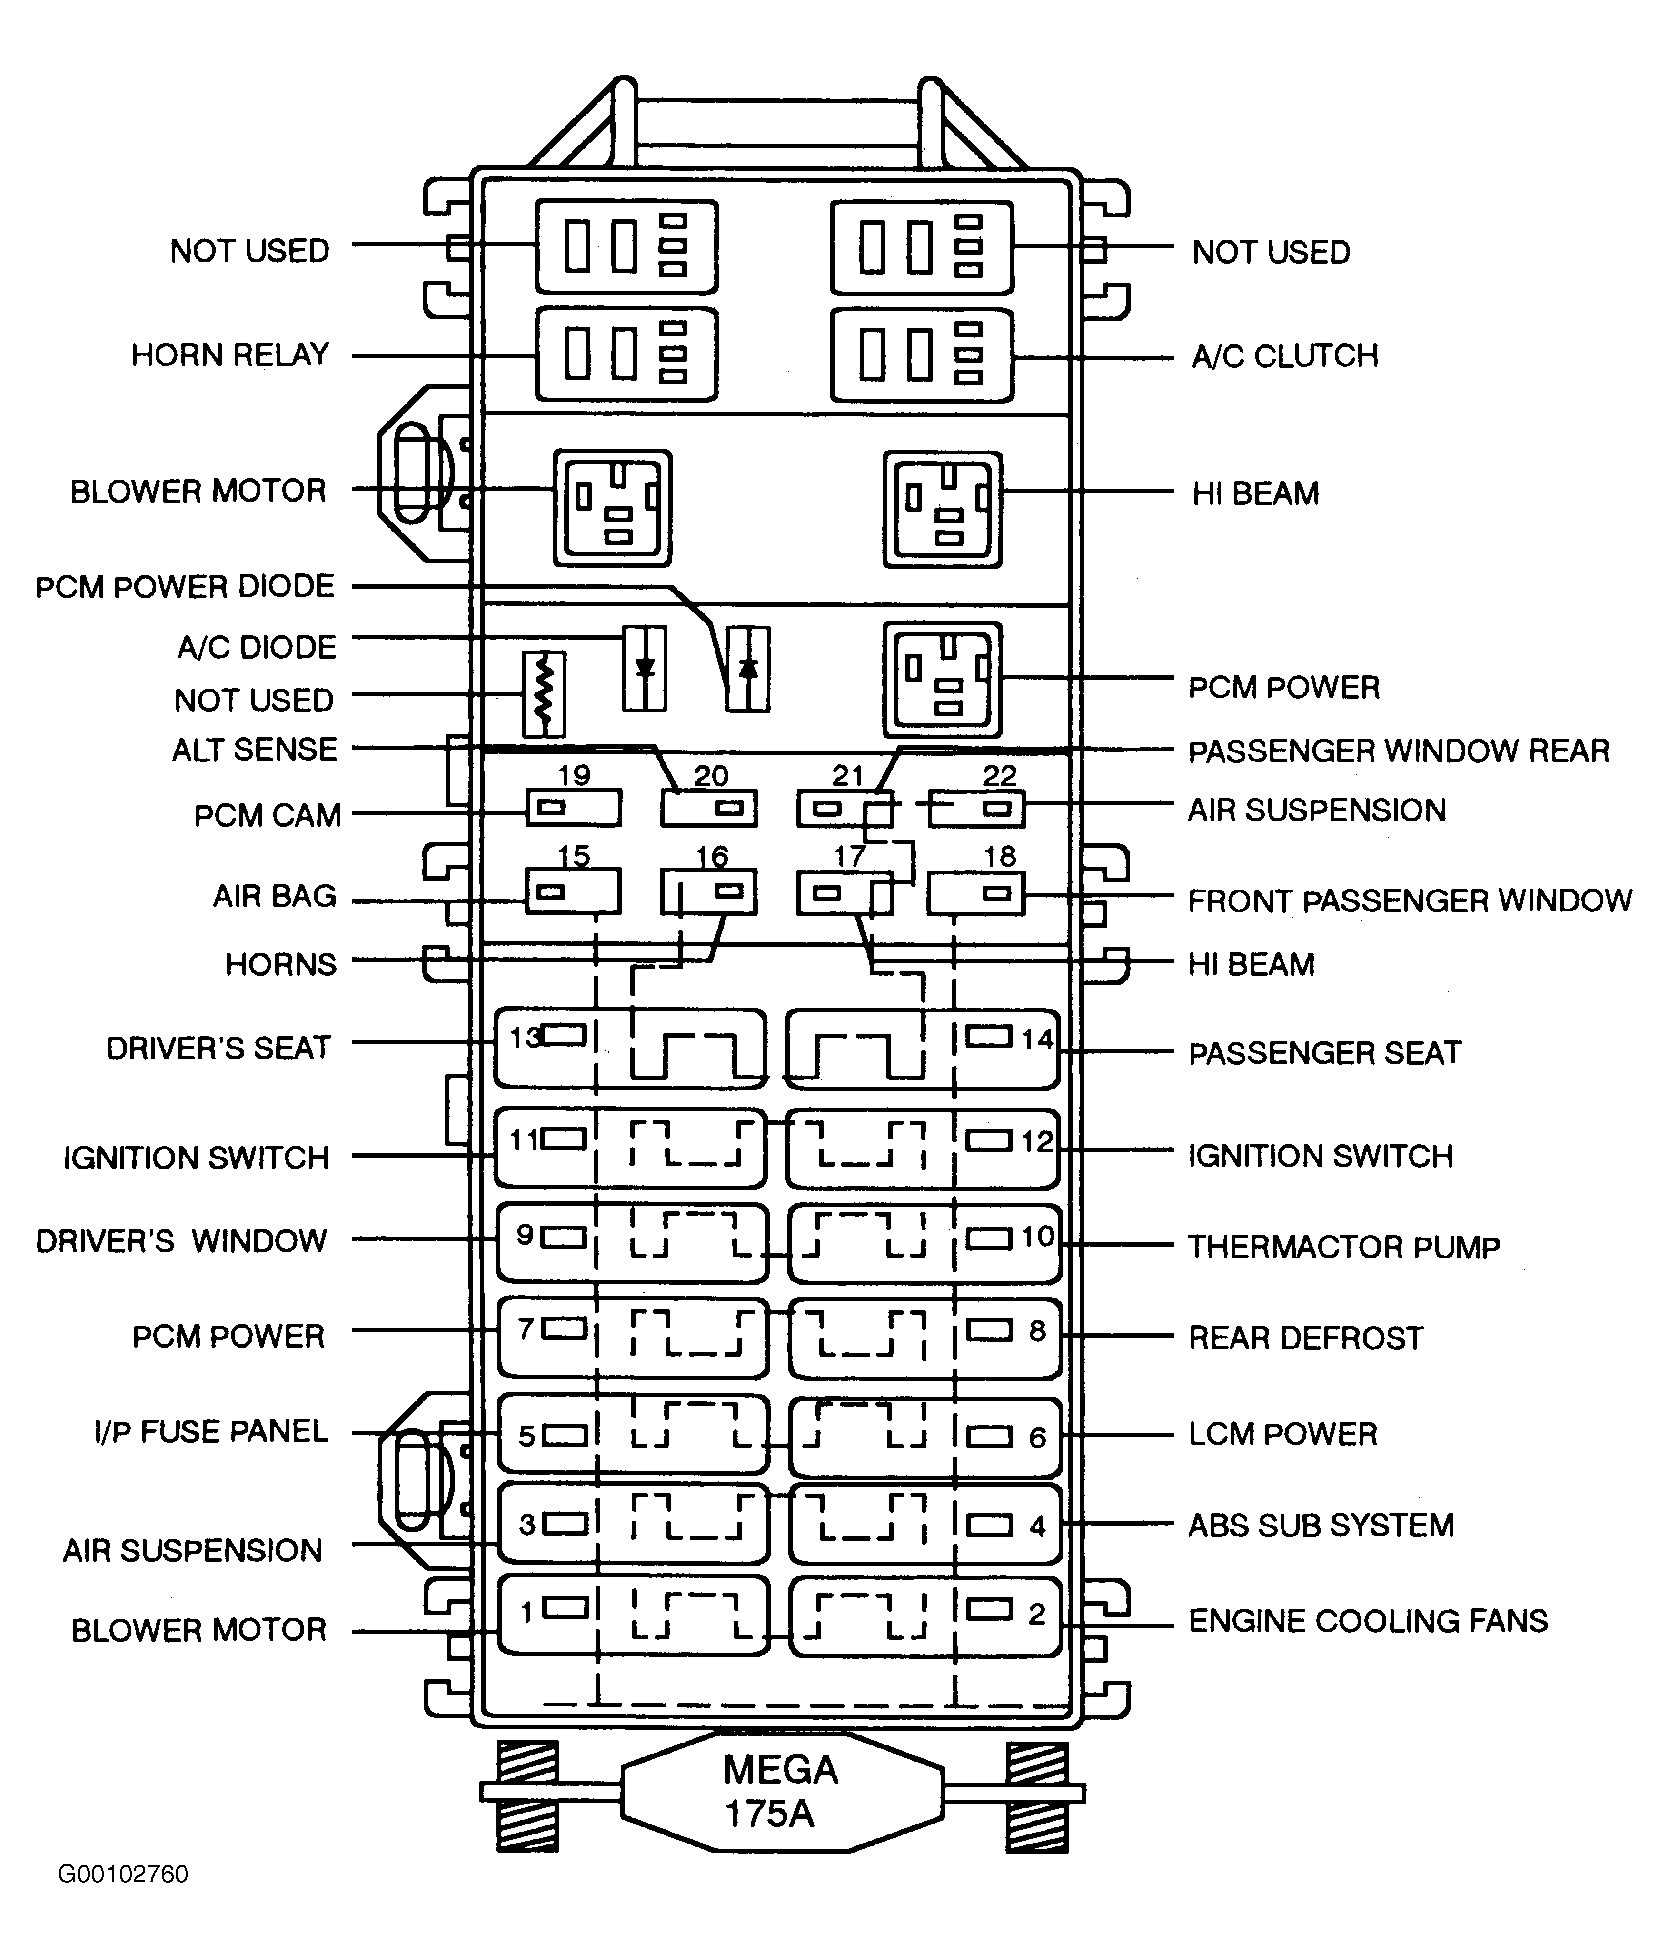 hight resolution of 2000 lincoln fuse box diagram wiring diagram perfomance 2000 lincoln navigator fuse panel diagram